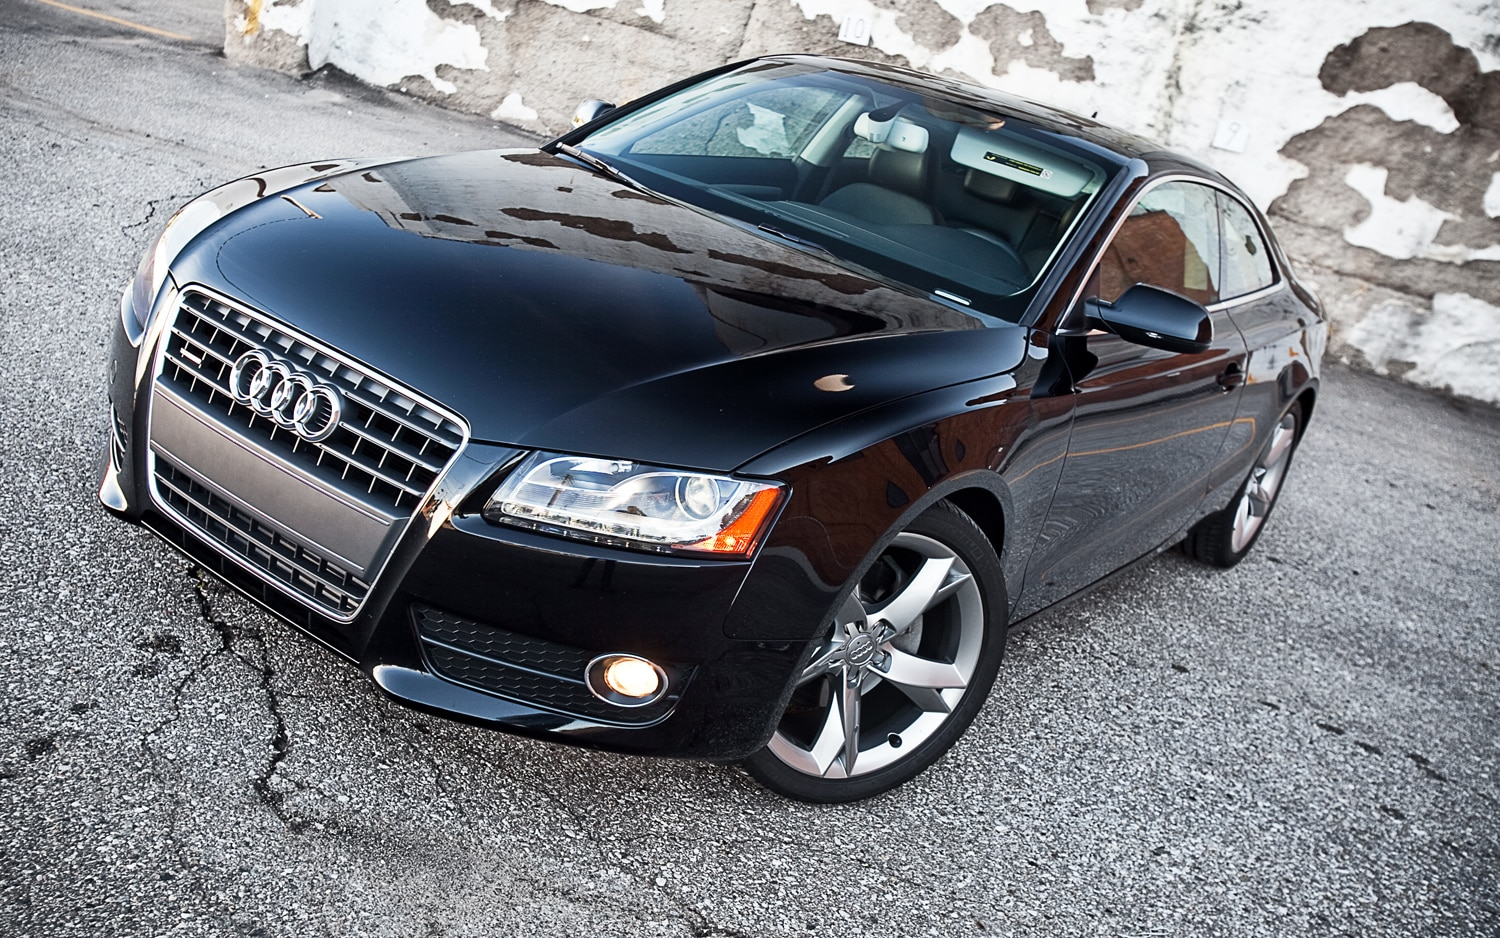 2011 audi a5 2 0 tfsi quattro coupe editors 39 notebook. Black Bedroom Furniture Sets. Home Design Ideas